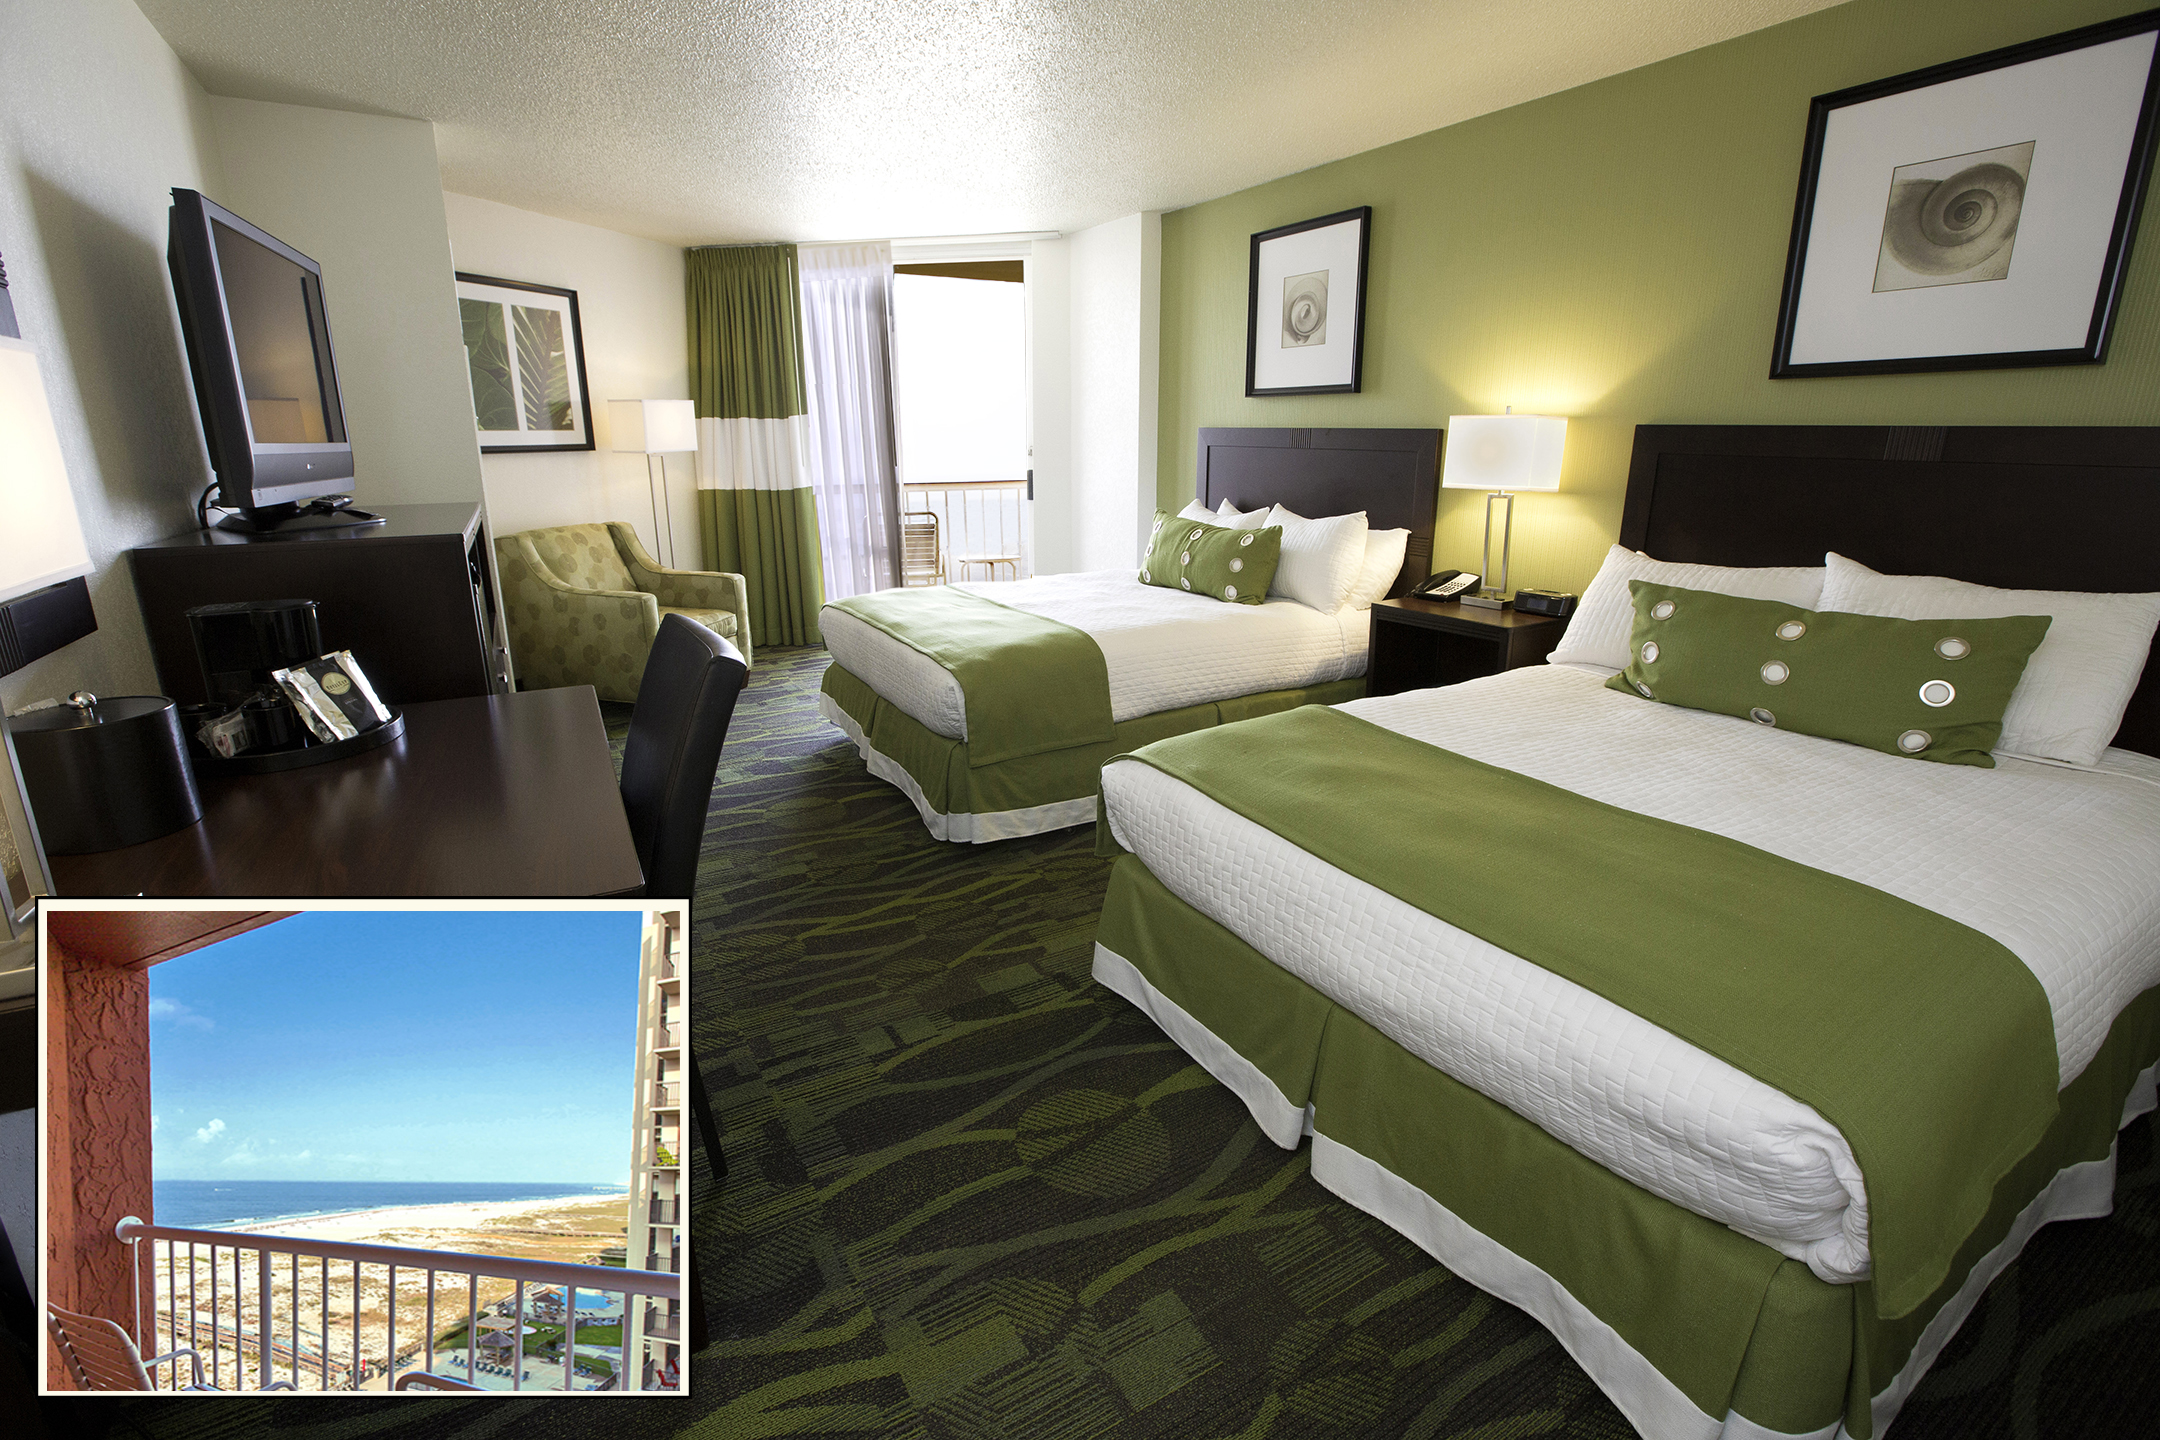 Perdido Beach Angle View Room featuring two queen beds